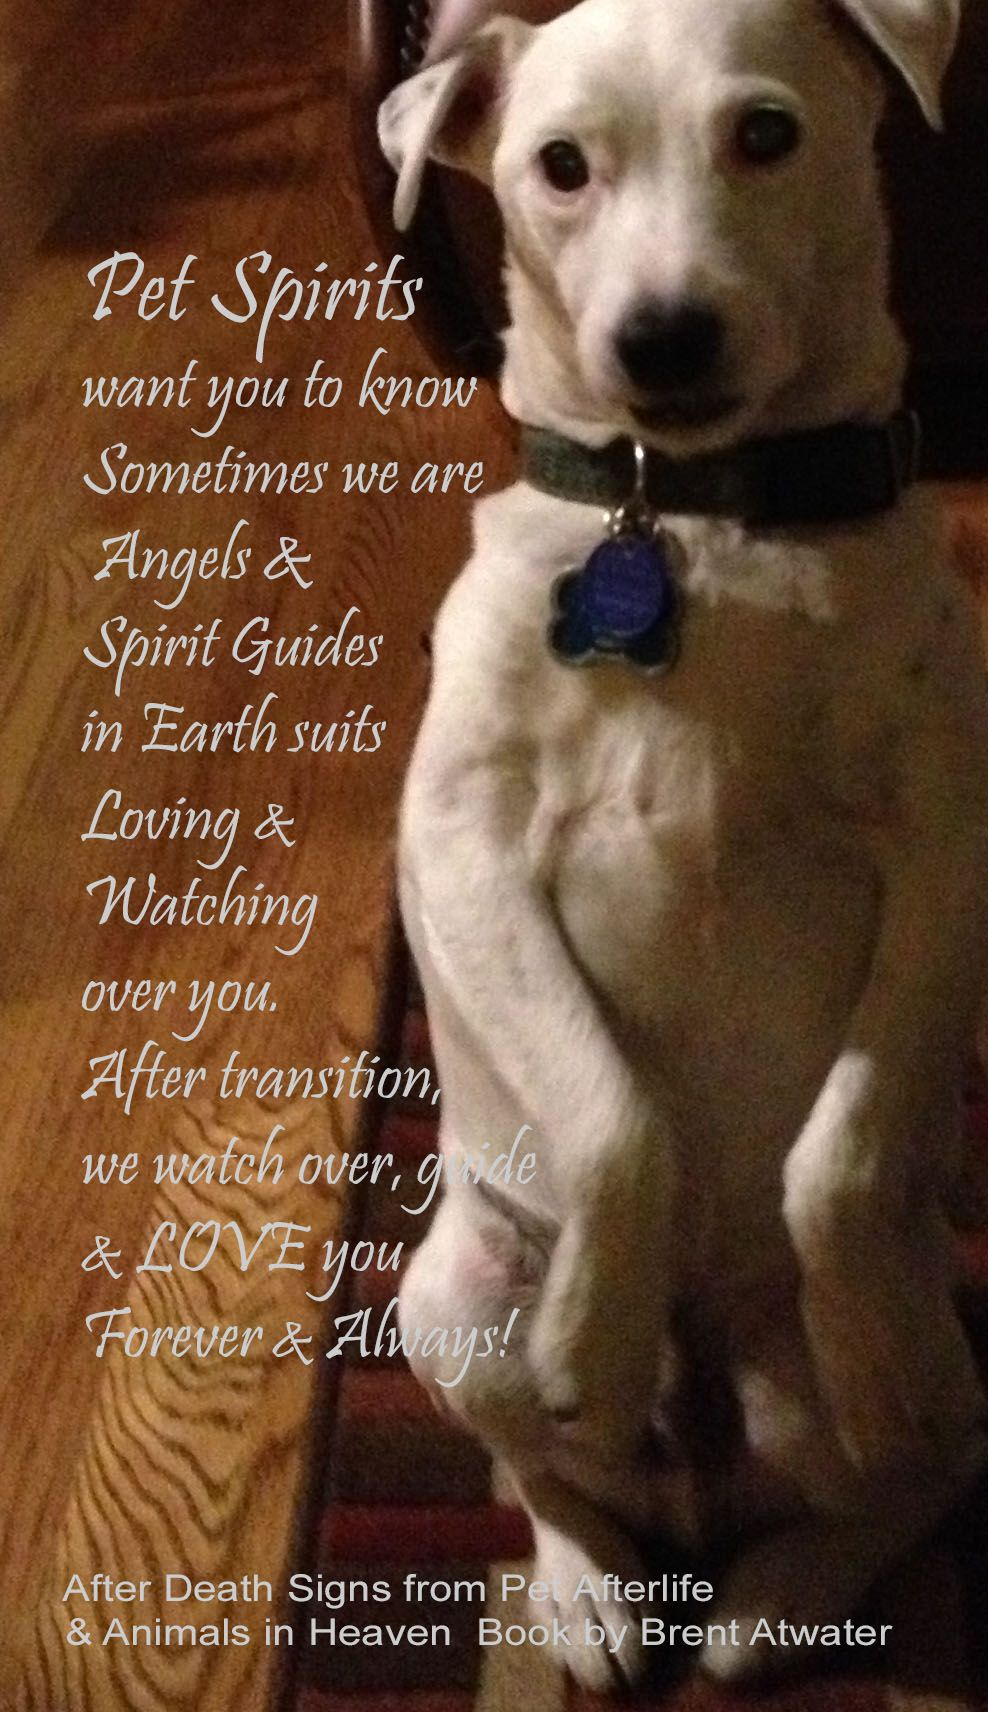 Pin on Dog Loss Quotes, Cat Loss Quotes from Pet Spirits ...